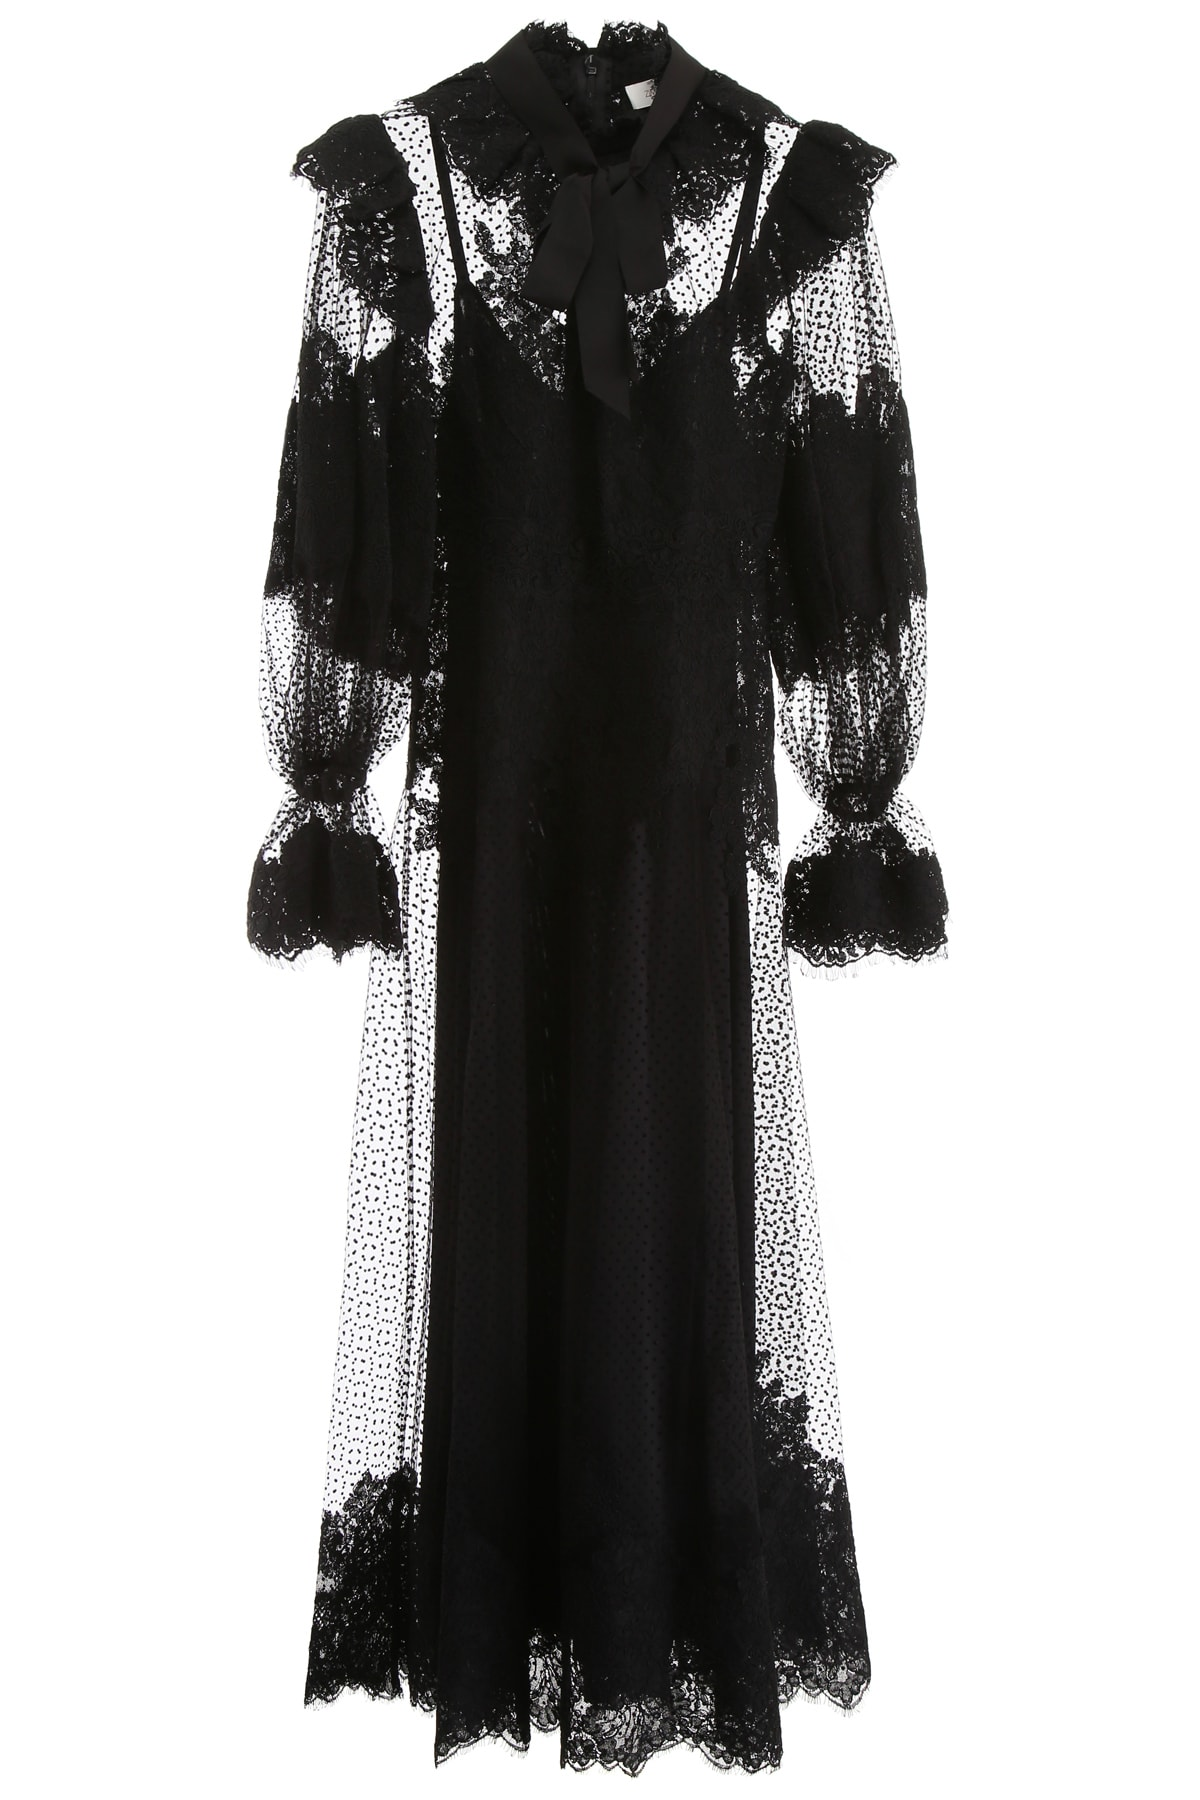 Zimmermann Lace Espionage Dress